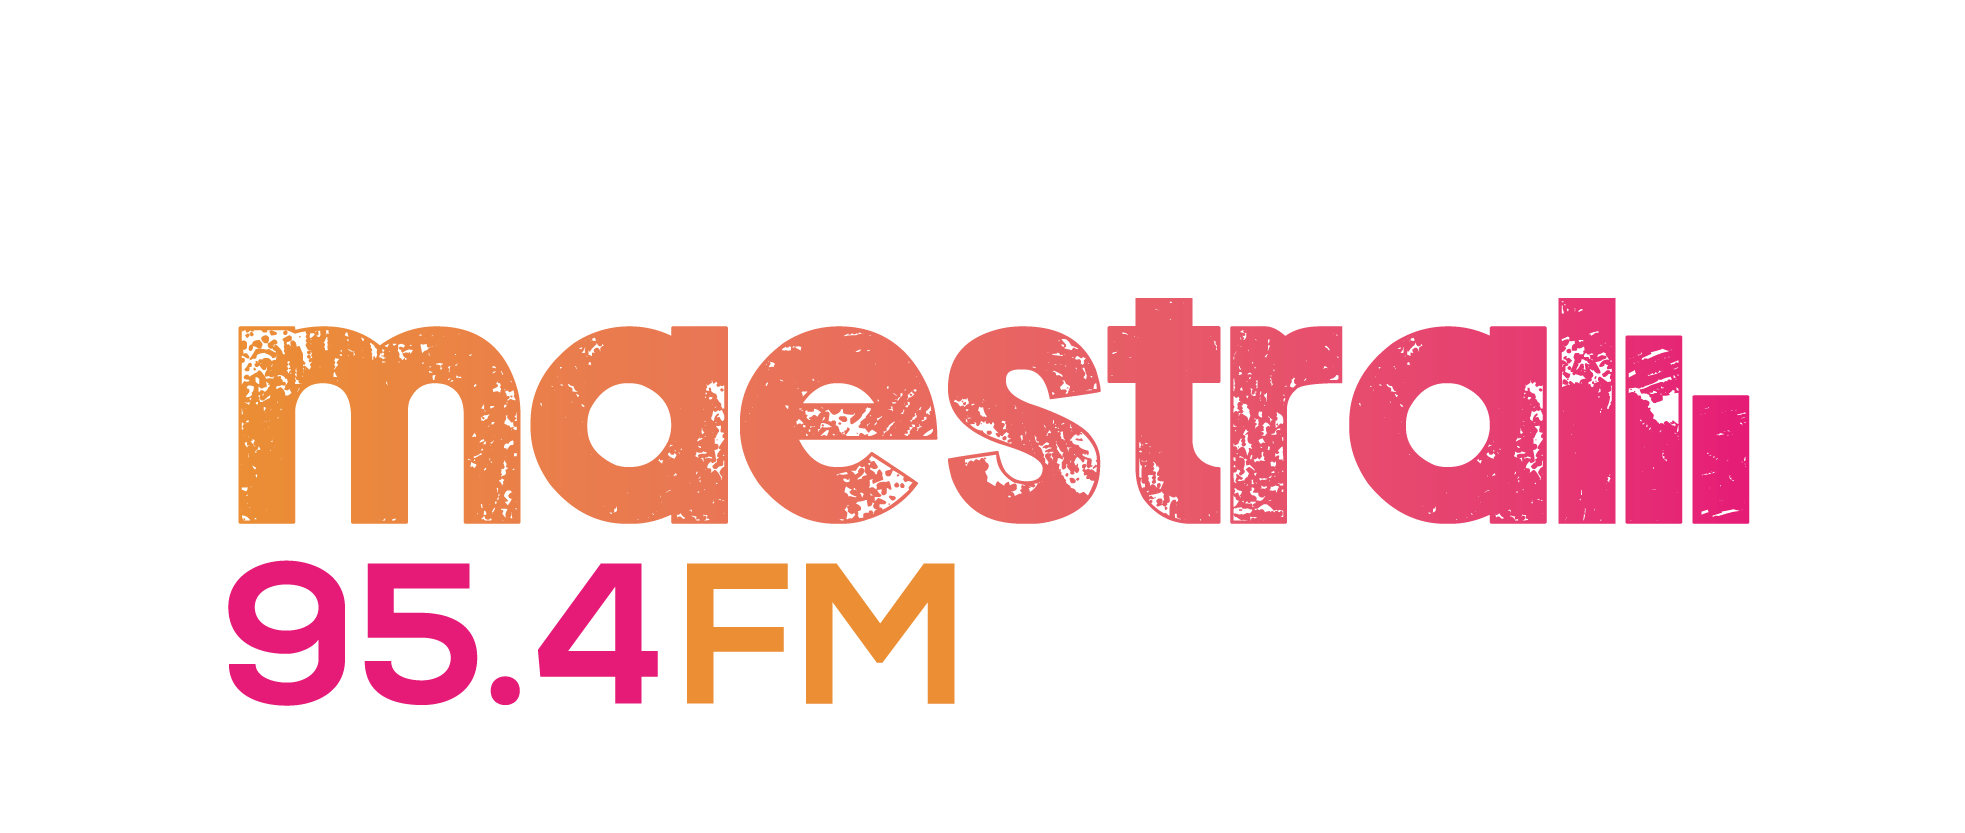 Radio Maestral final logo transparent 01 01 1